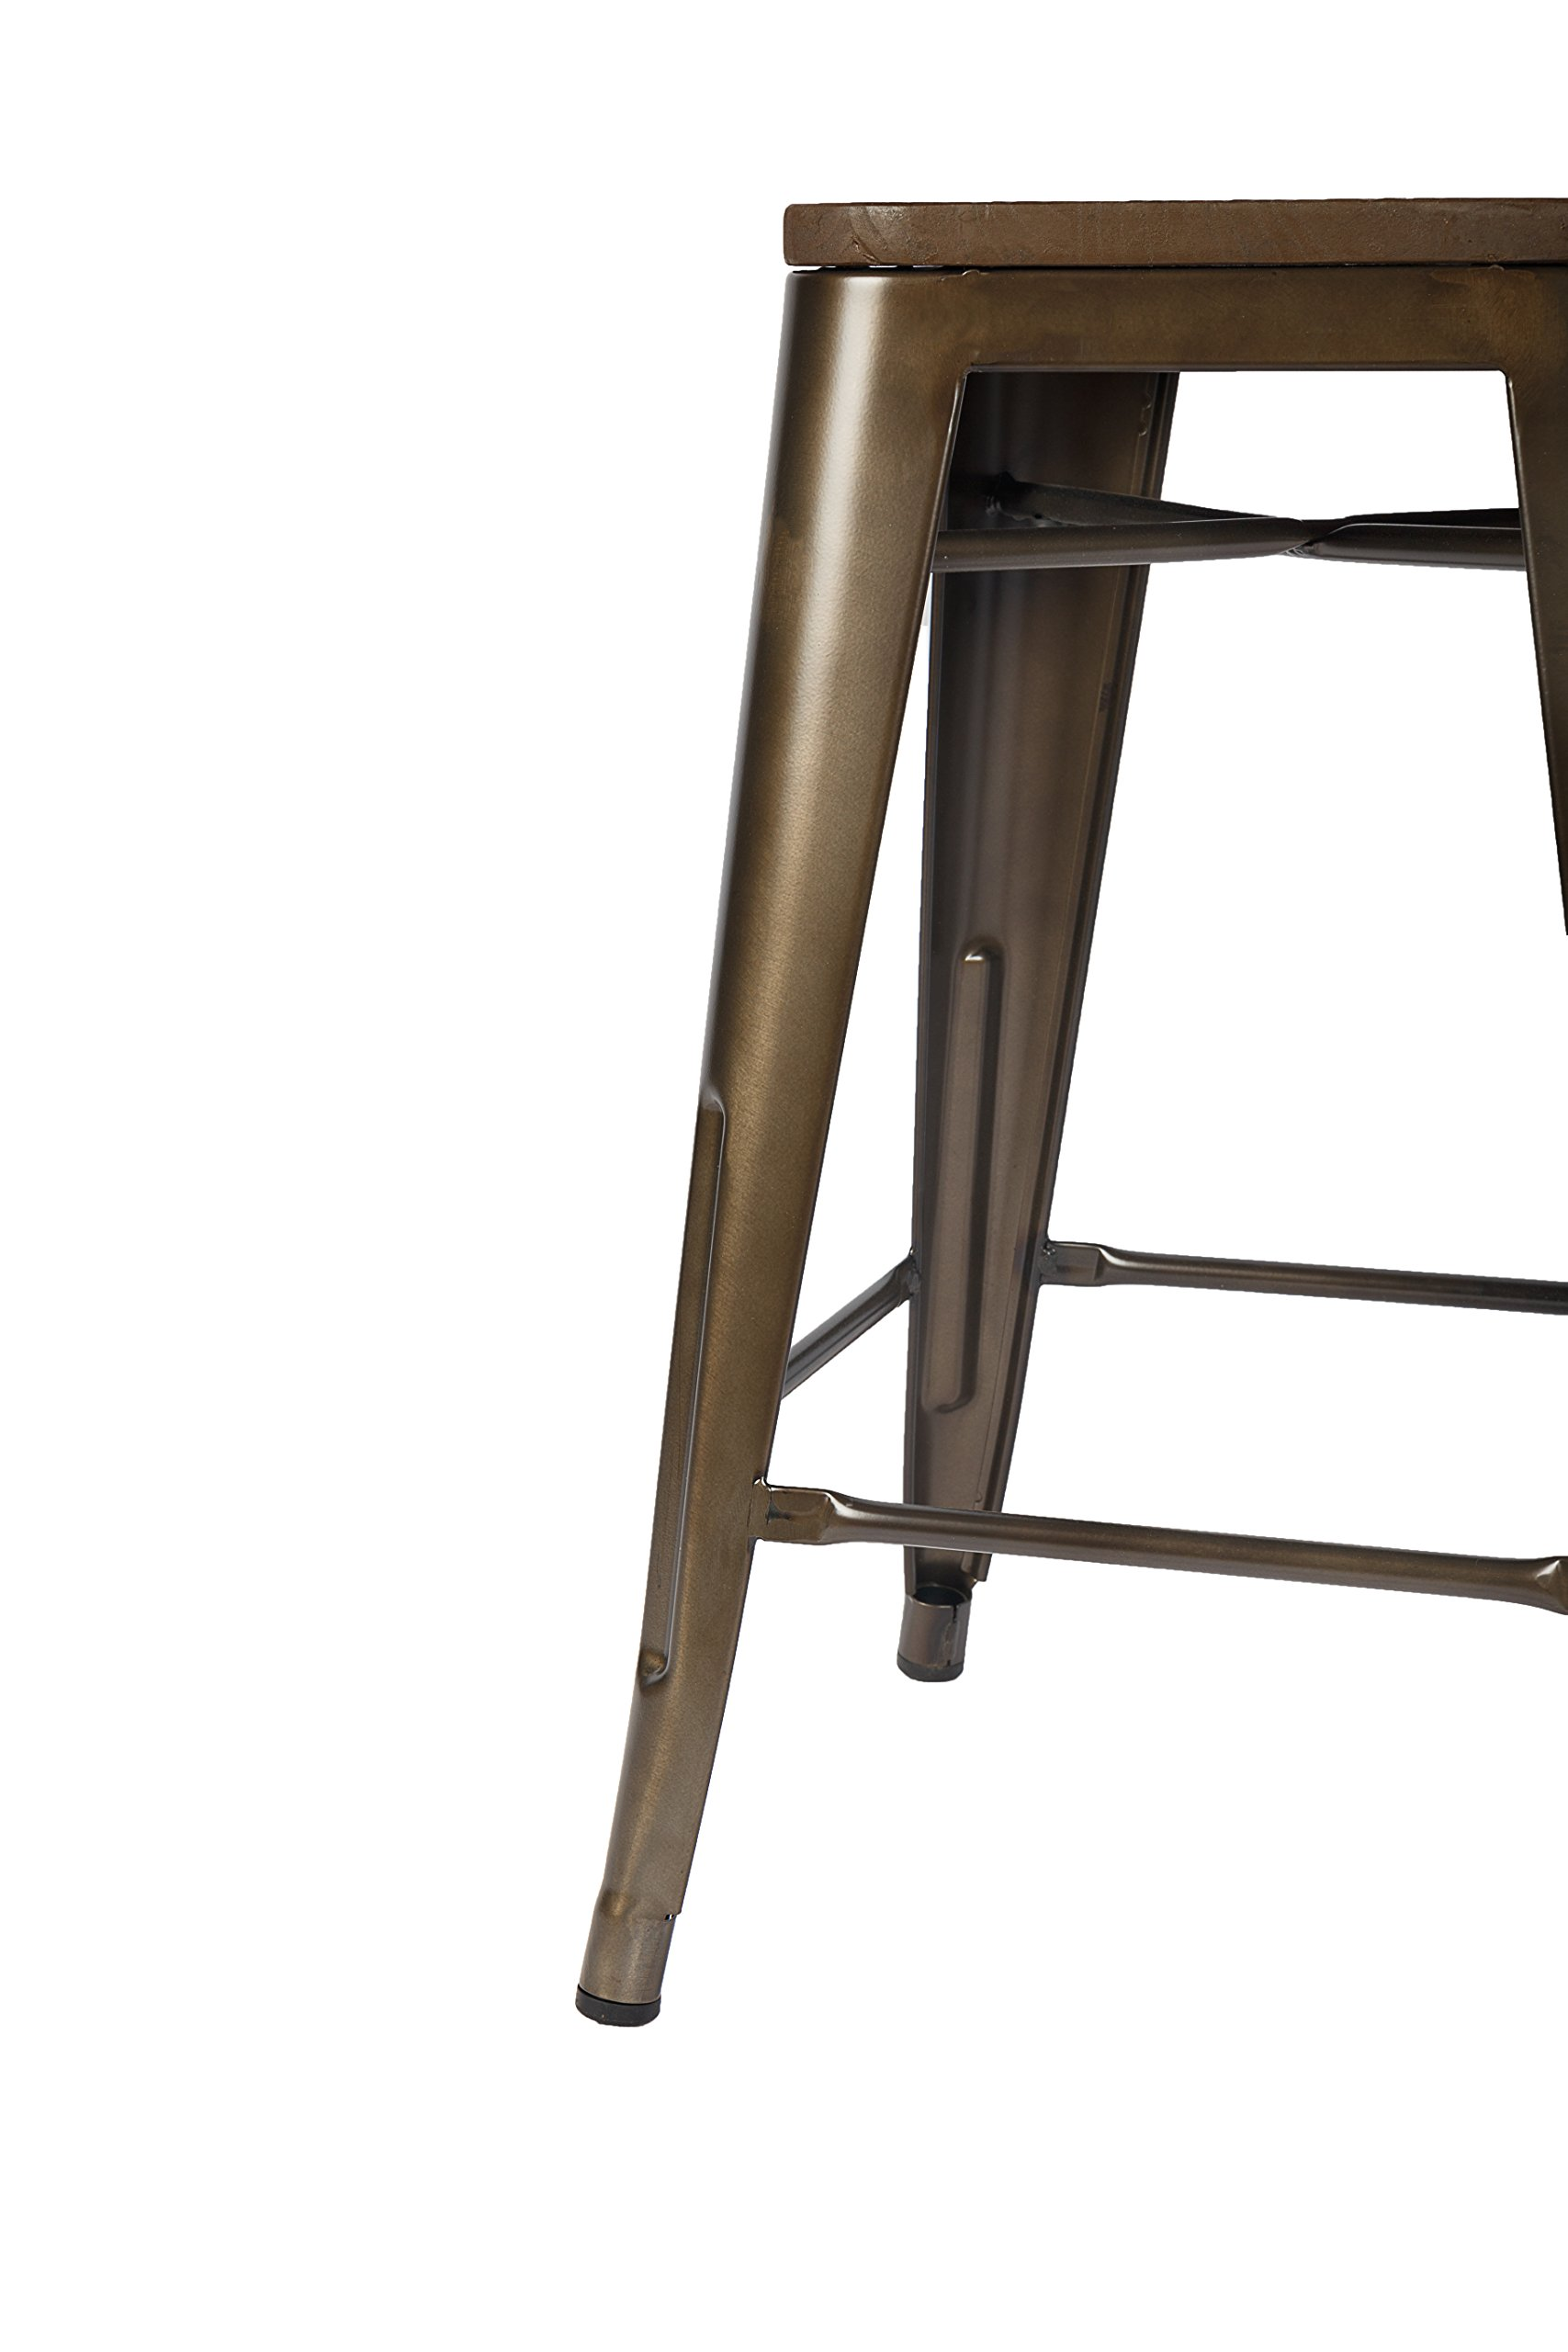 LCH 24 Inch Patio Metal Industrial Bar Stools, Set of 4 Indoor/Outdoor Counter Stackable Barstool with Wood Seat, 500 LB Limit, Antique Copper by LCH (Image #9)